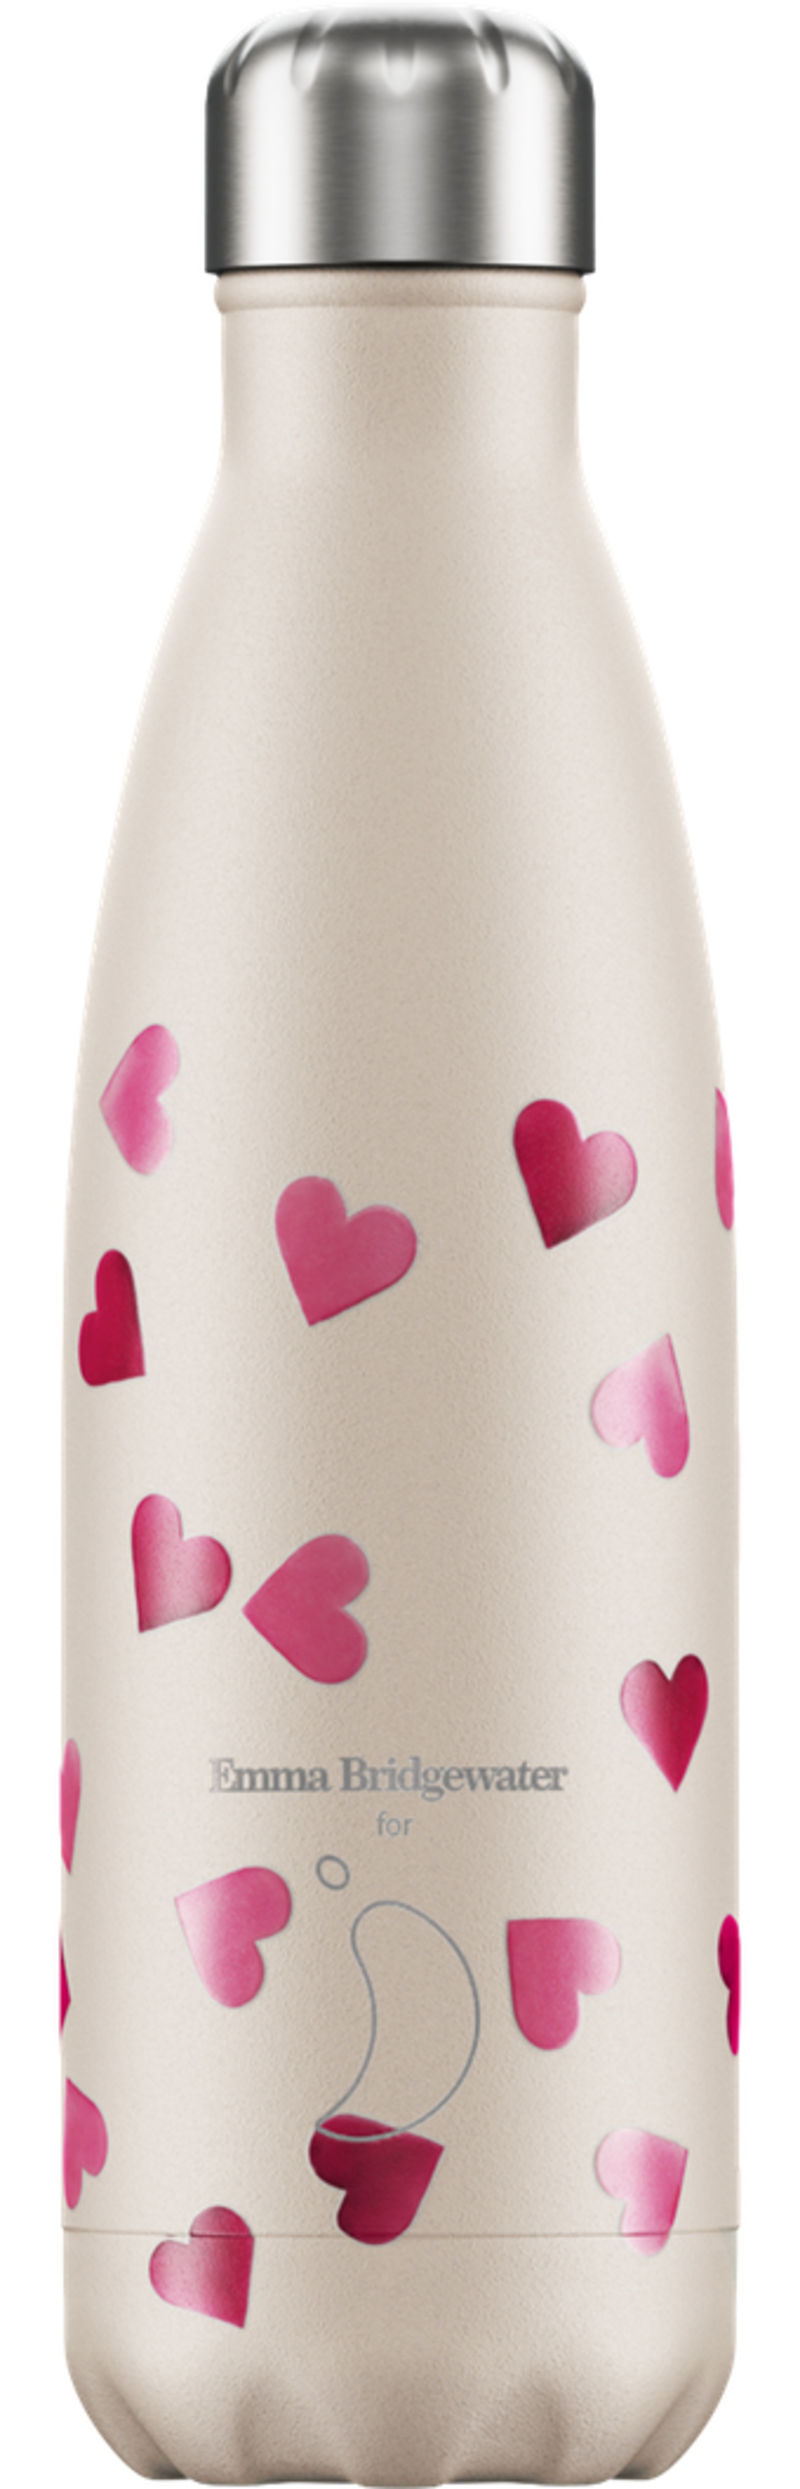 BOTELLA INOX CORAZONES 260ml